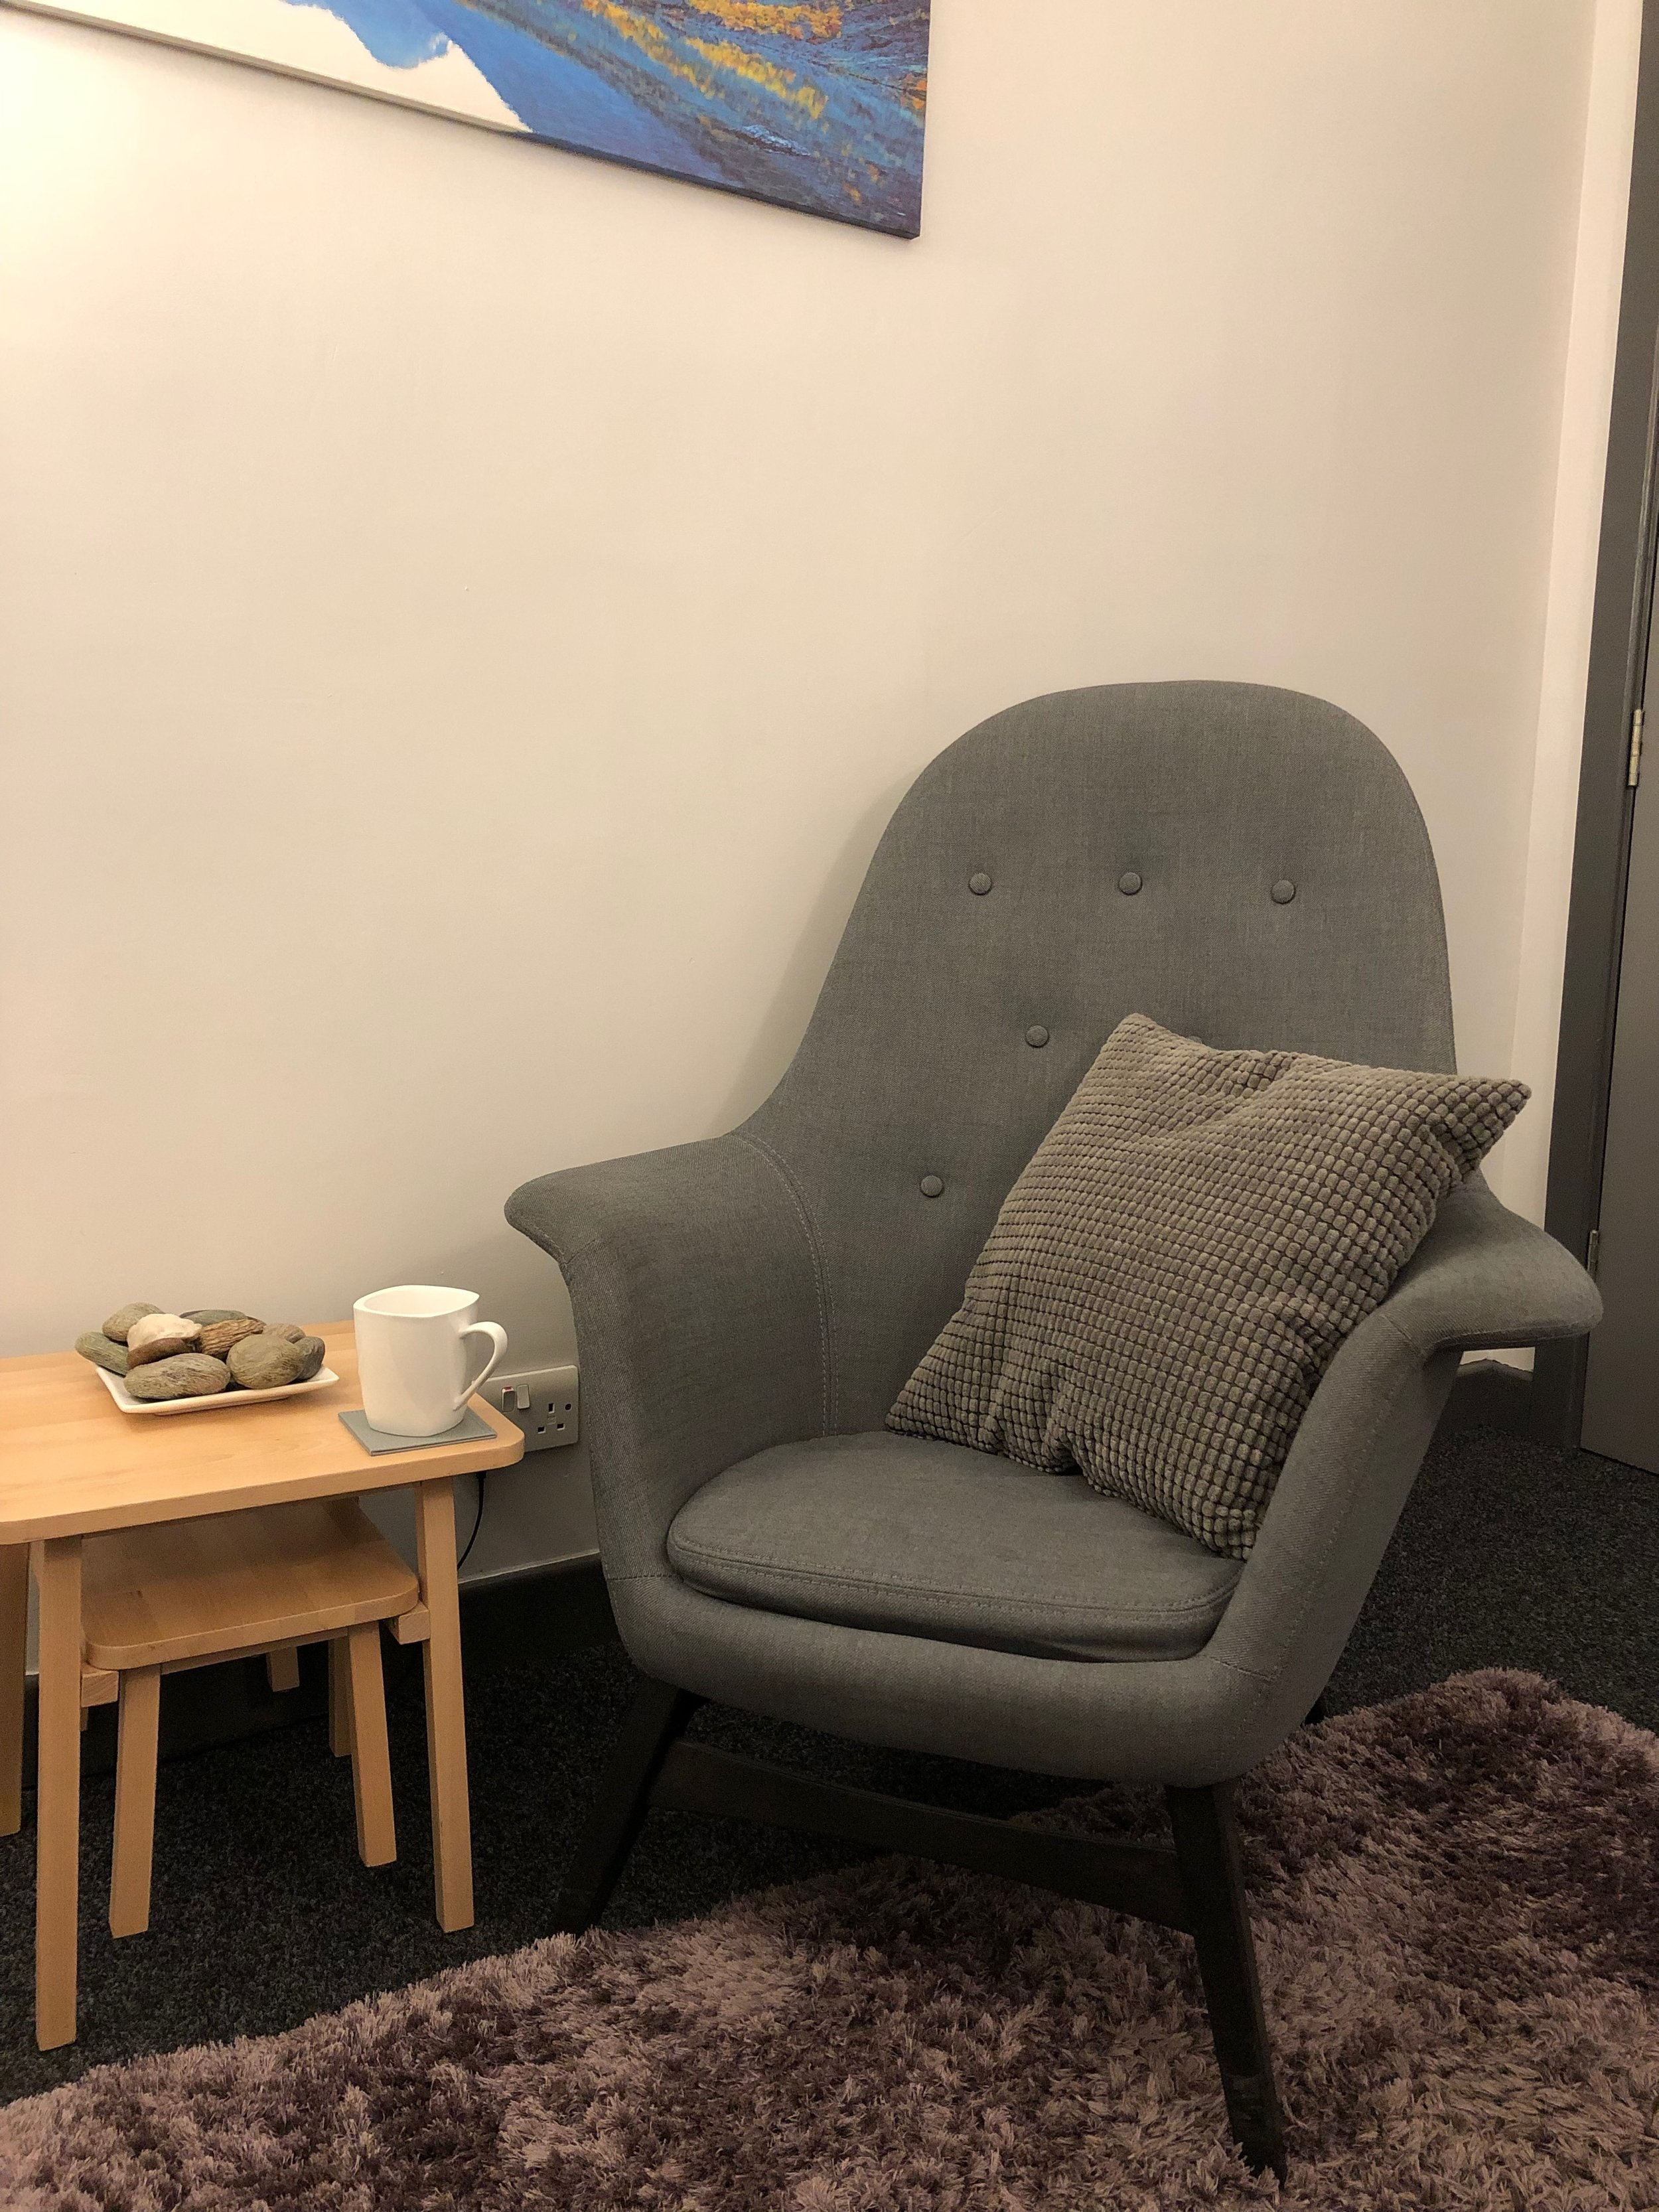 One of the counselling rooms at Cavendish Business Centre